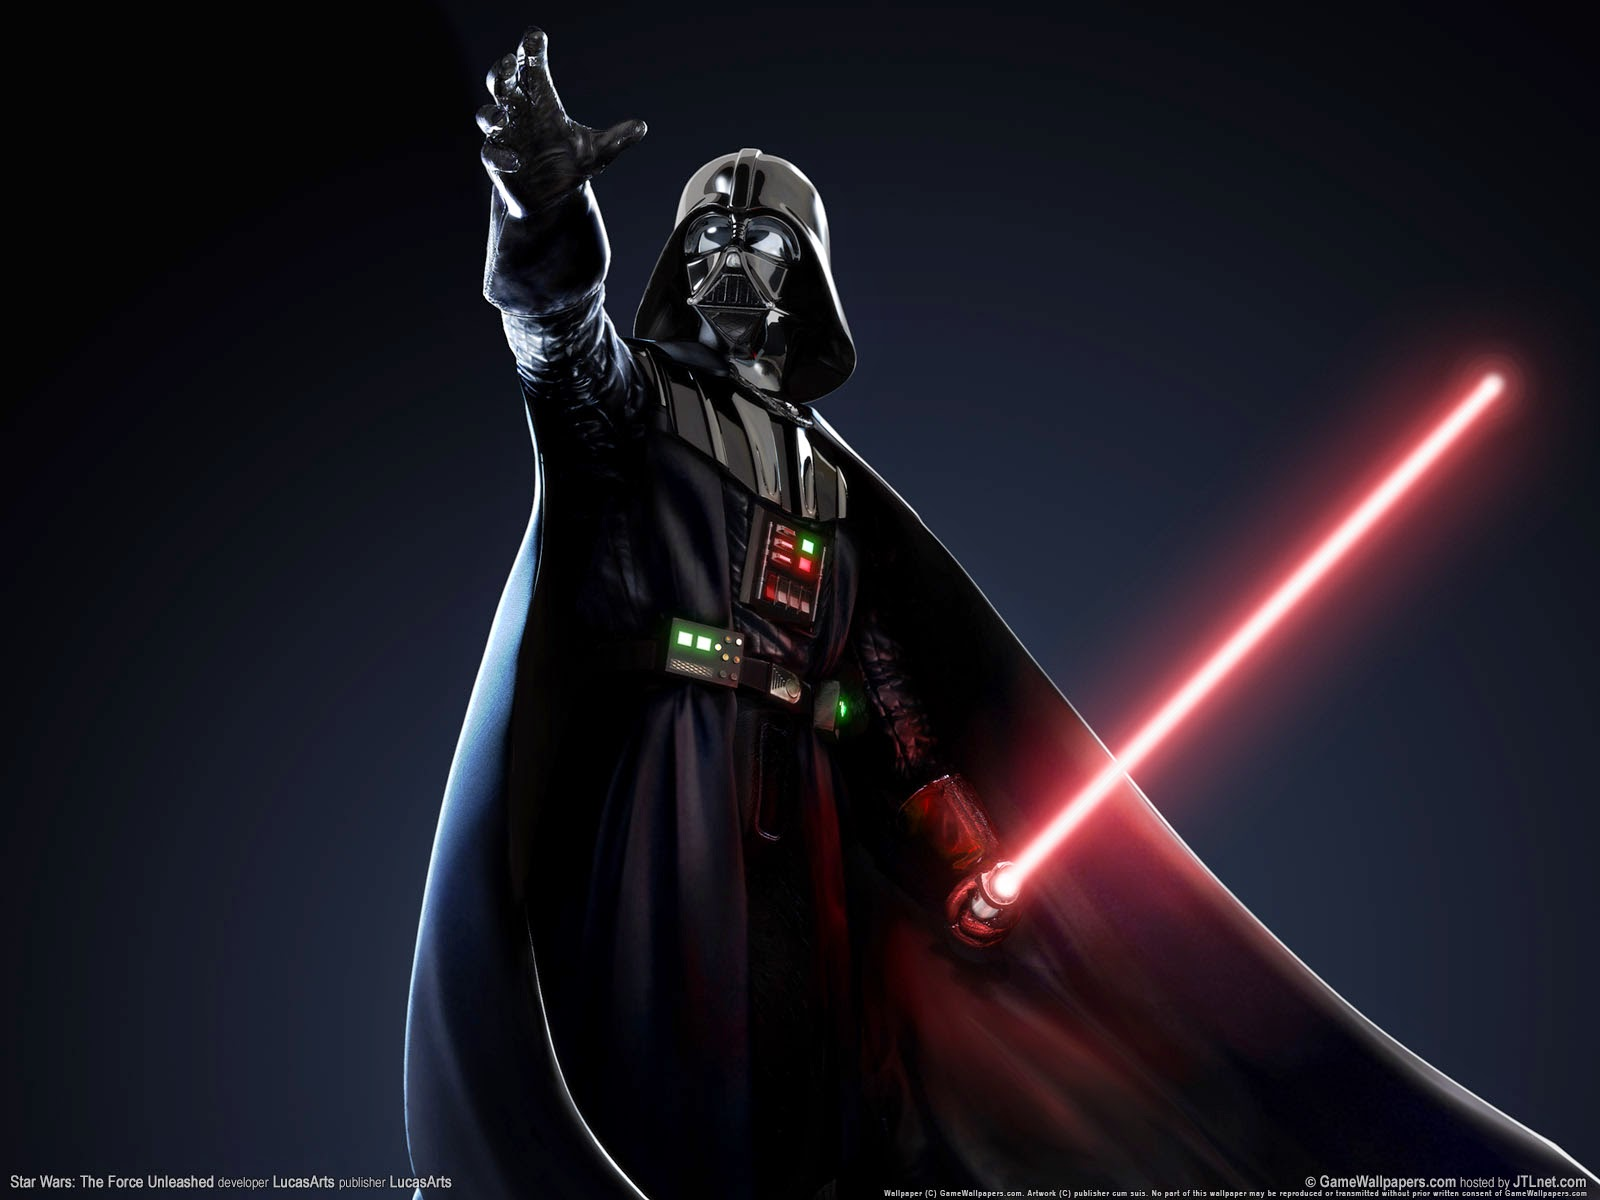 Star Wars The Force Unleashed 2 Wallpapers: Electronic Cerebrectomy: 2015-01-04